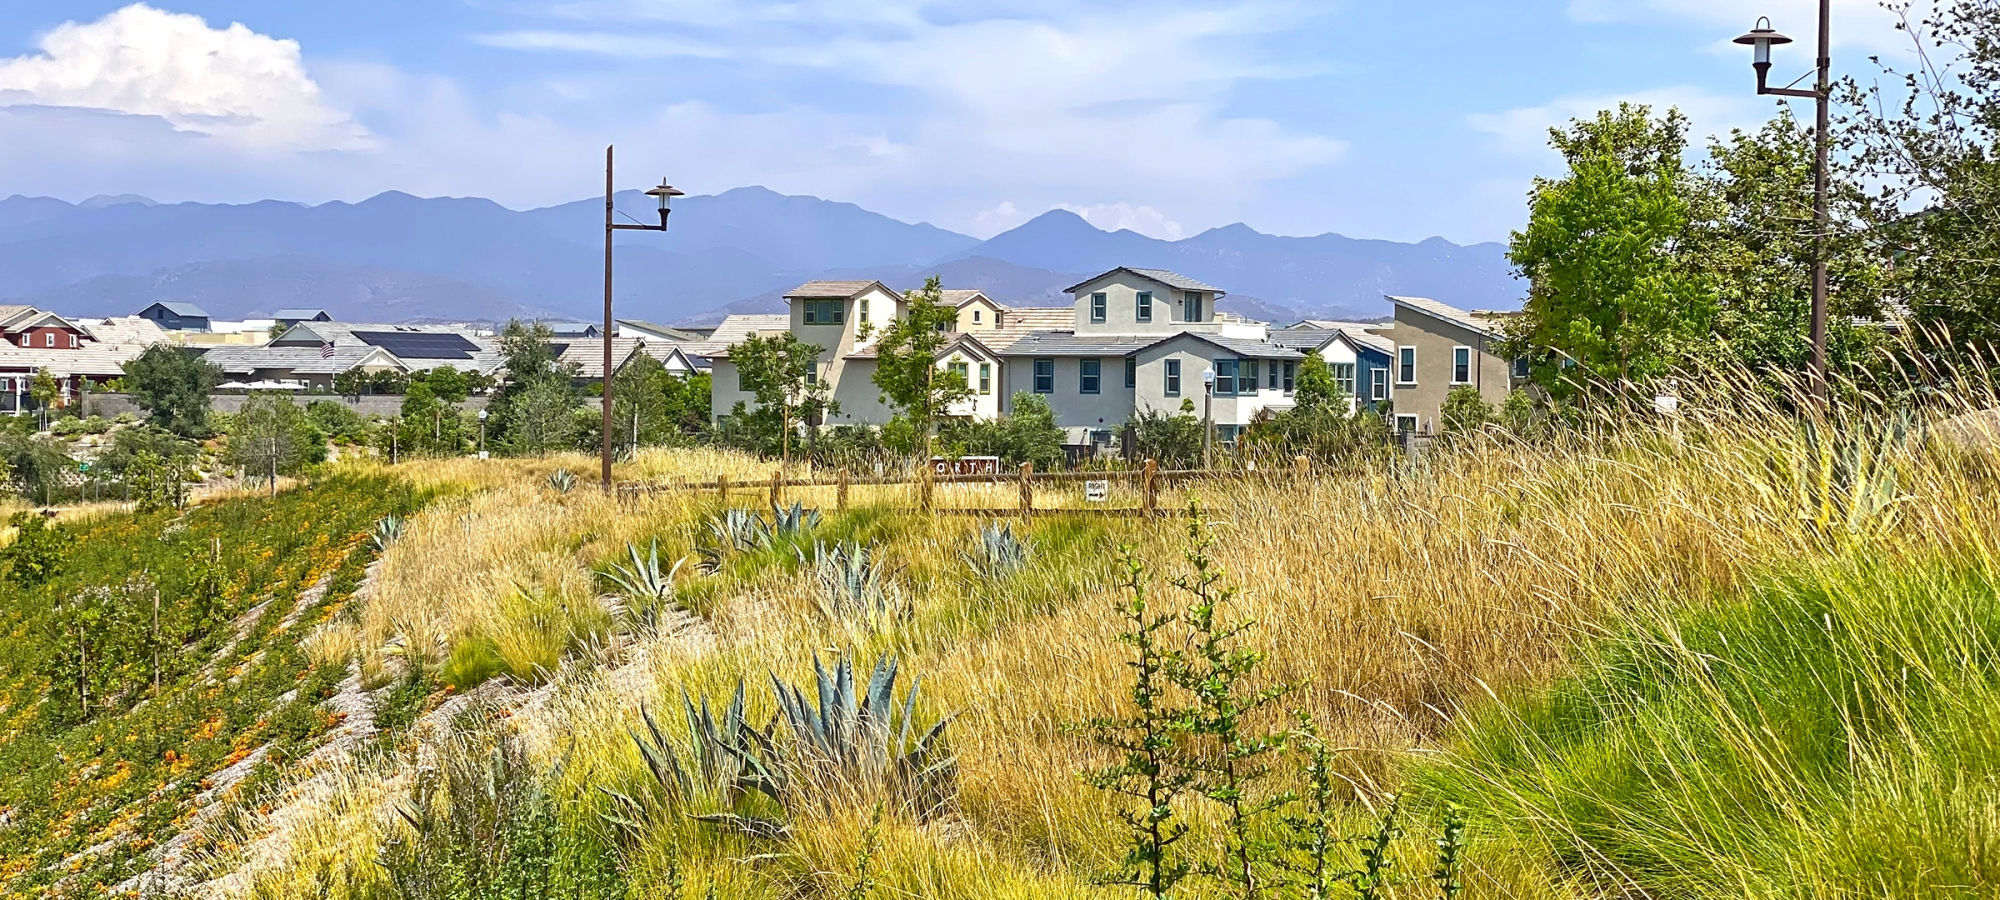 Rancho Mission Viejo Homes for Sale